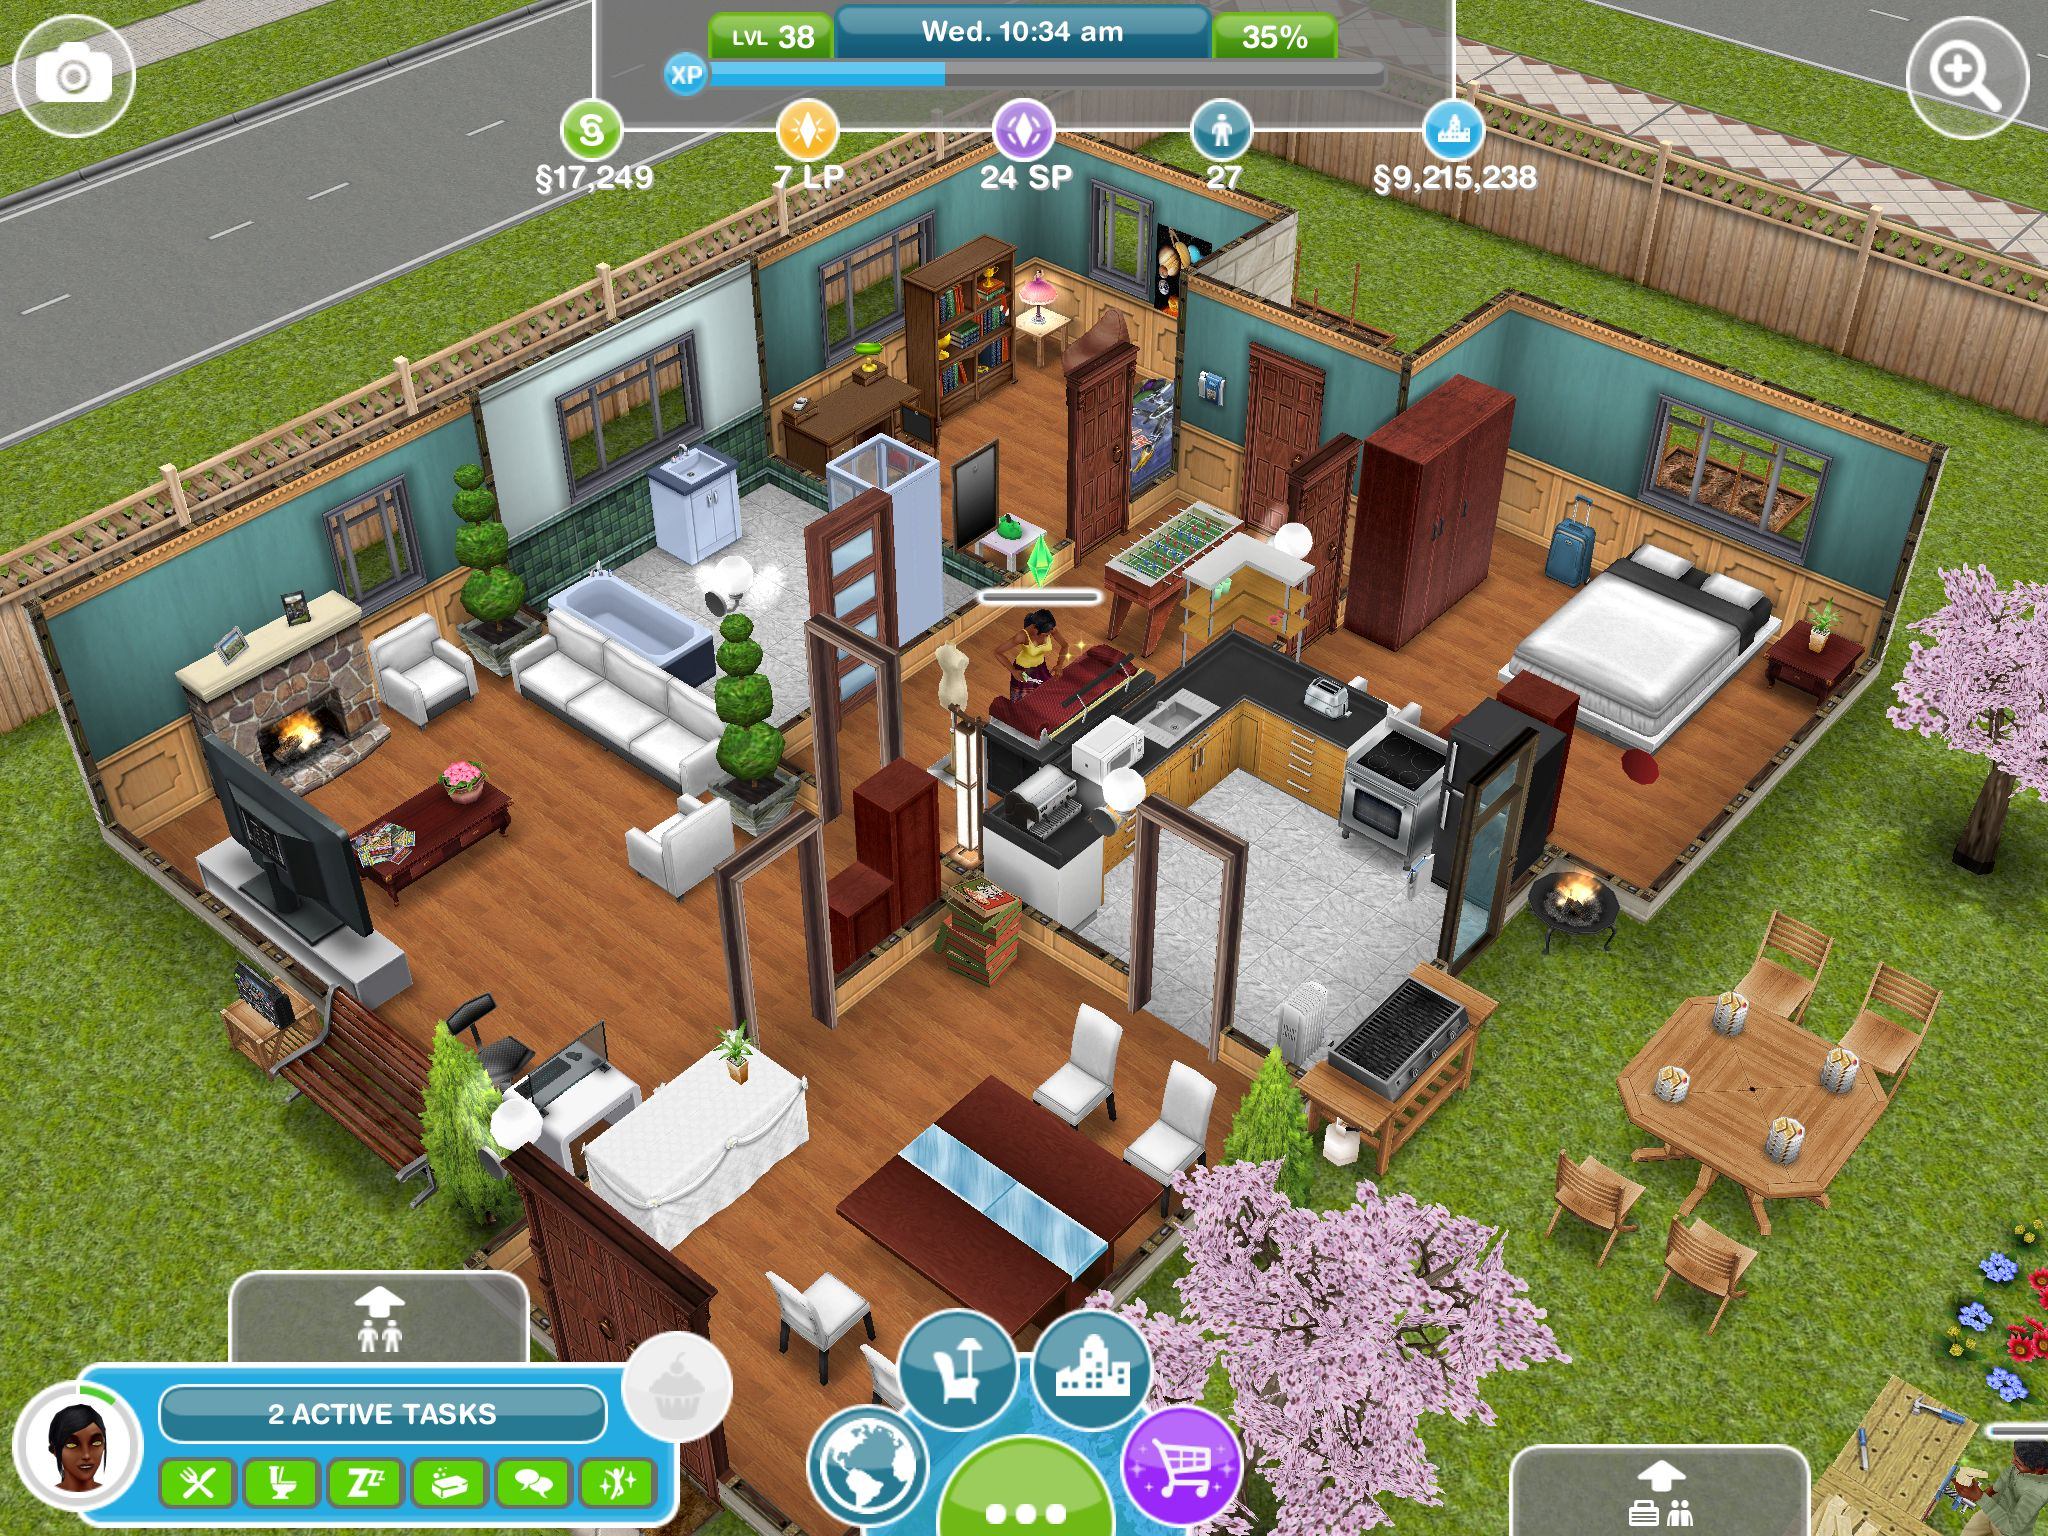 Sim blue house  sims  simsfreeplay  house. 1000  images about Sim Simmi on Pinterest   House plans  The sims